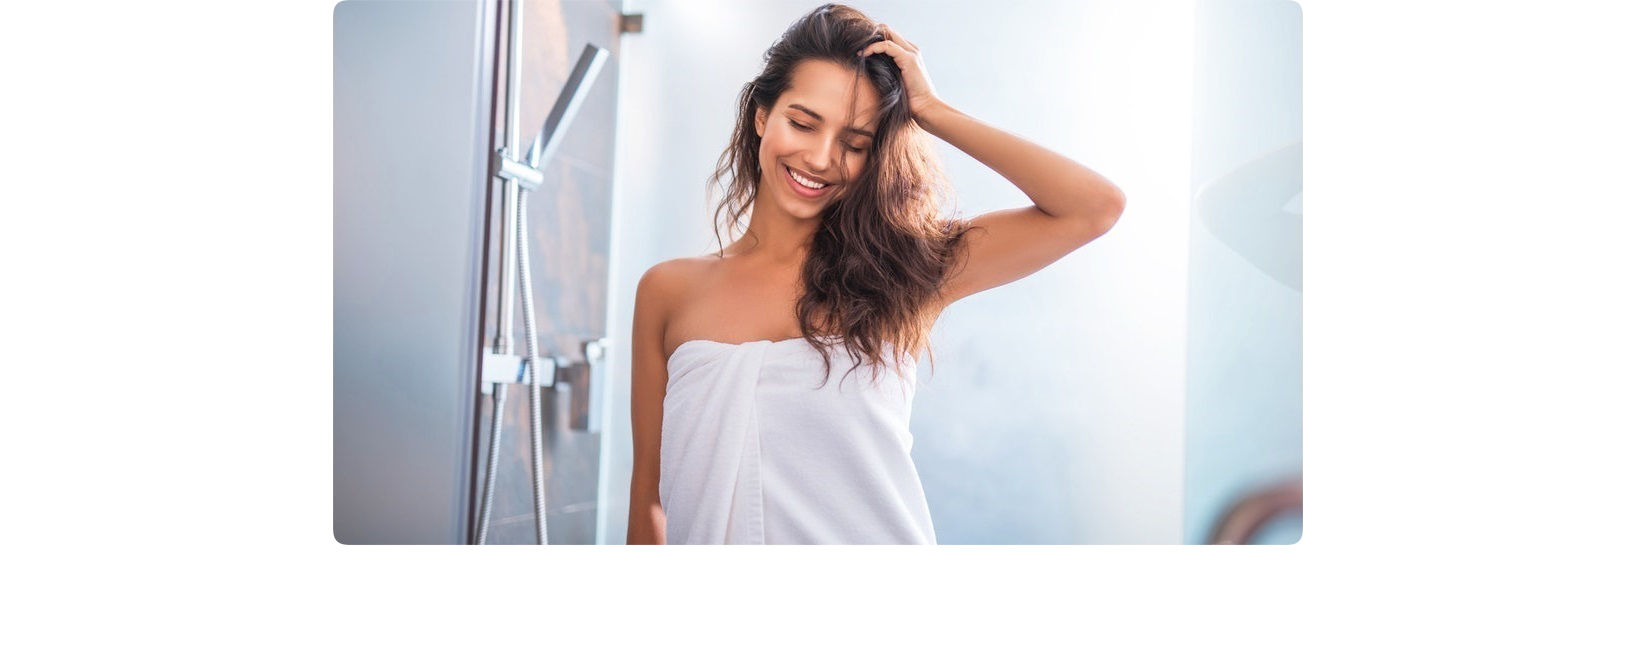 Smiling woman coming out of the shower wrapped in white towel